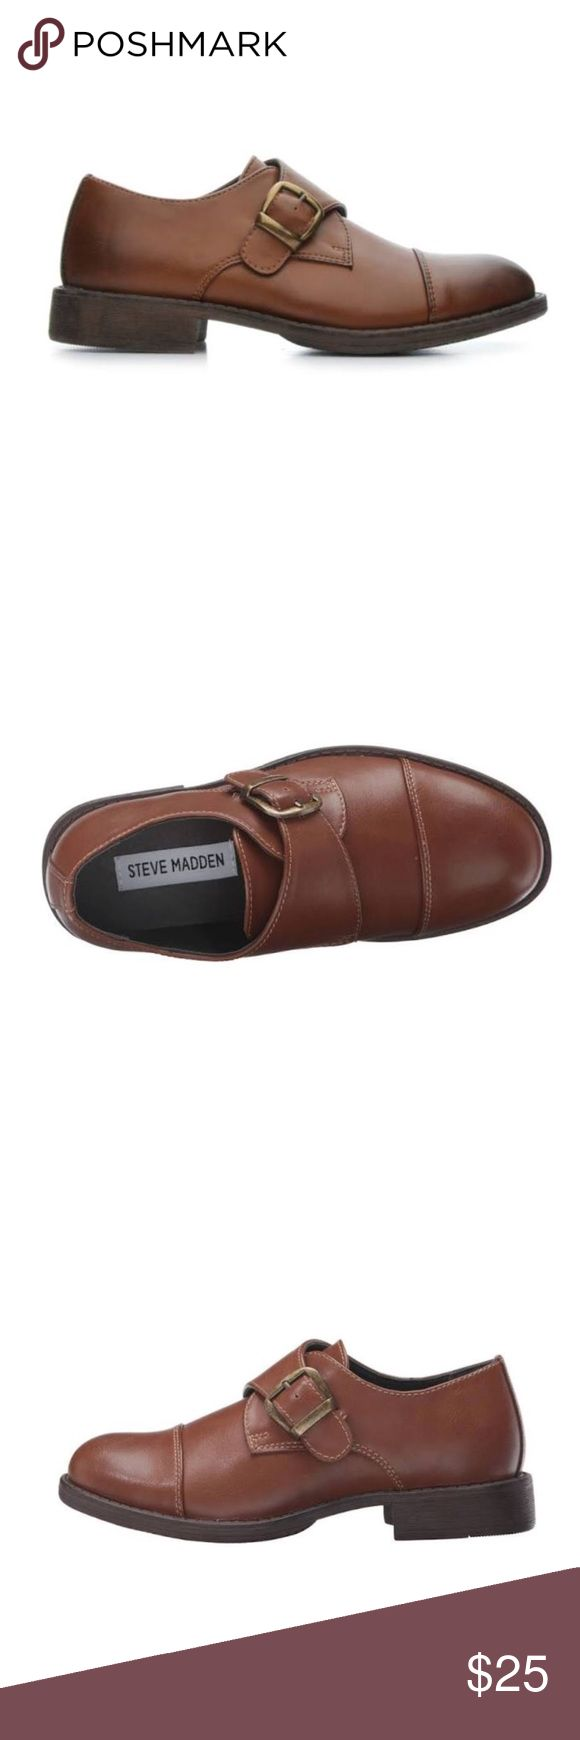 Steve Madden Boys dress shoes. Size 3. BMonkk. Size 3 Boys nSteve Madden BMonkk! This loafer features faux burnished uppers and a sleek single monk strap style for a classic look. Brown. My son wore once in wedding ceremony. Steve Madden Shoes Dress Shoes